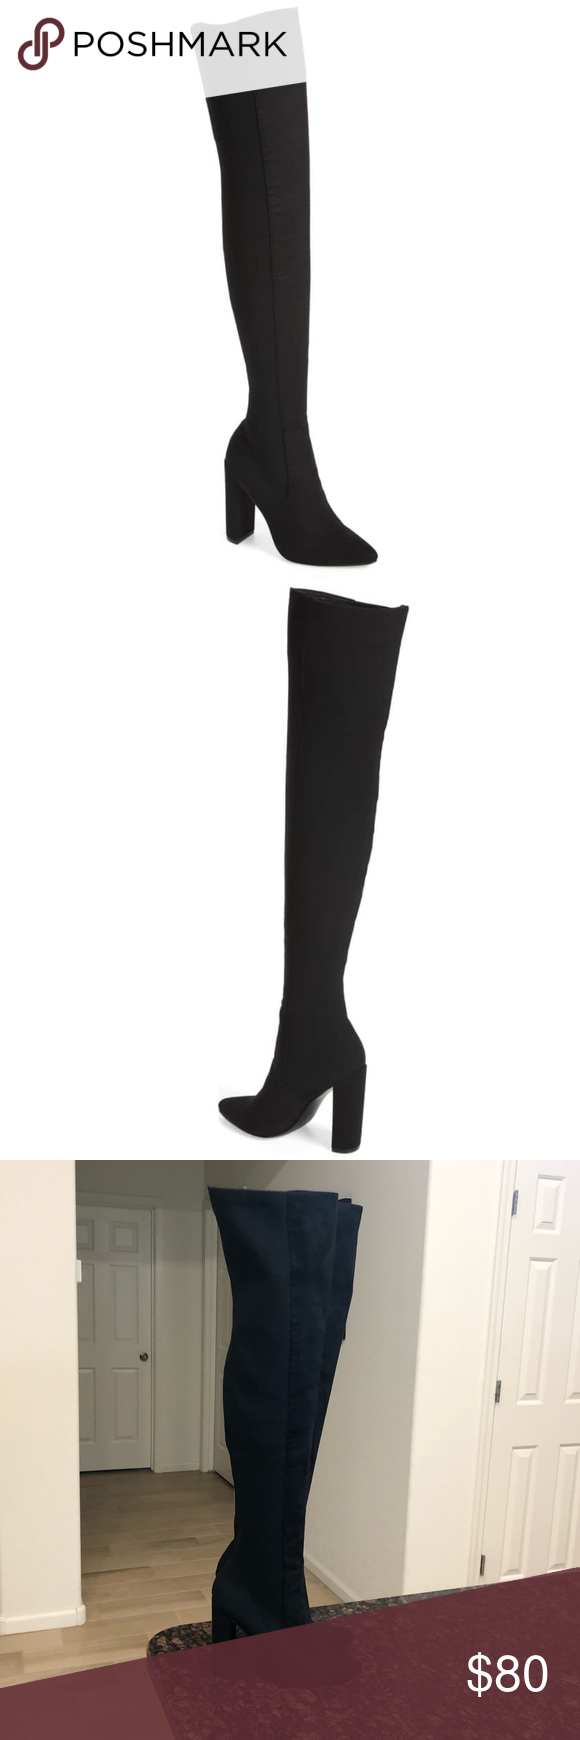 1065bdf3d59 Steve Madden Essence Stretch Over the Knee Boots Steve Madden Essence  Stretch Over the Knee Boots. Size 8. Like new! Details in last photo.